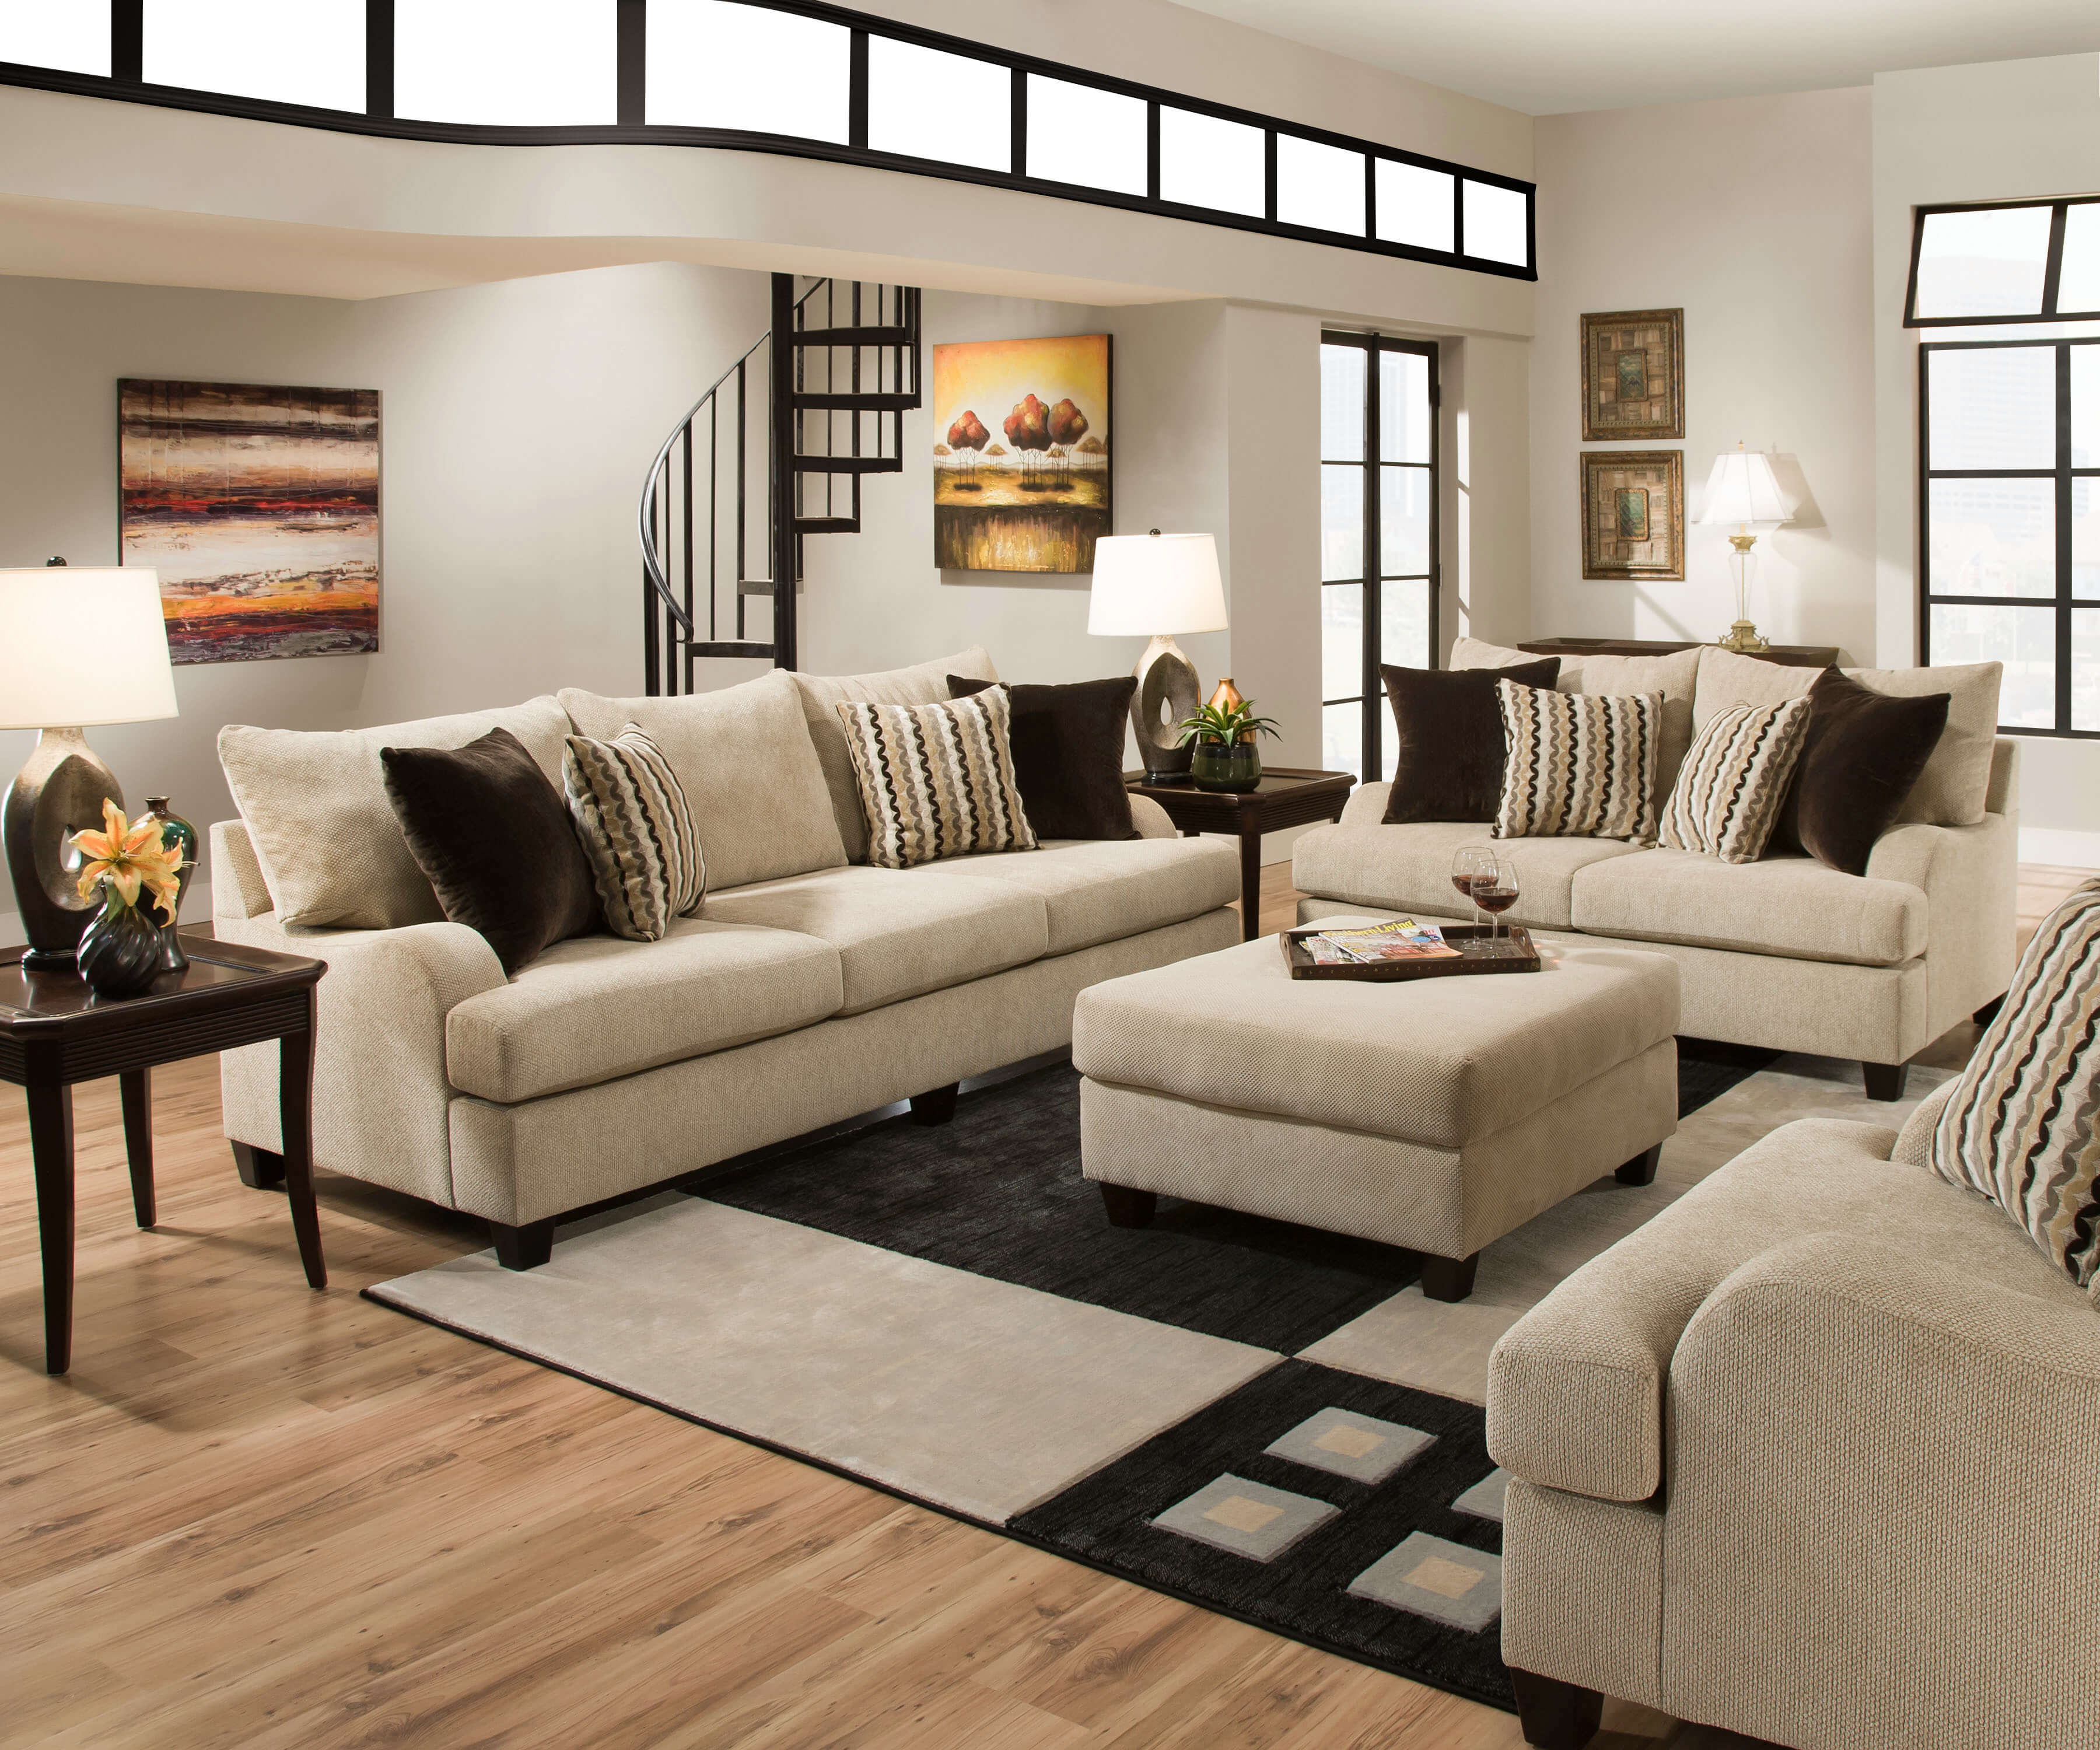 Living Room Sofas Sets 8520 Simmons Trinidad Taupe Living Room Set Discontinued